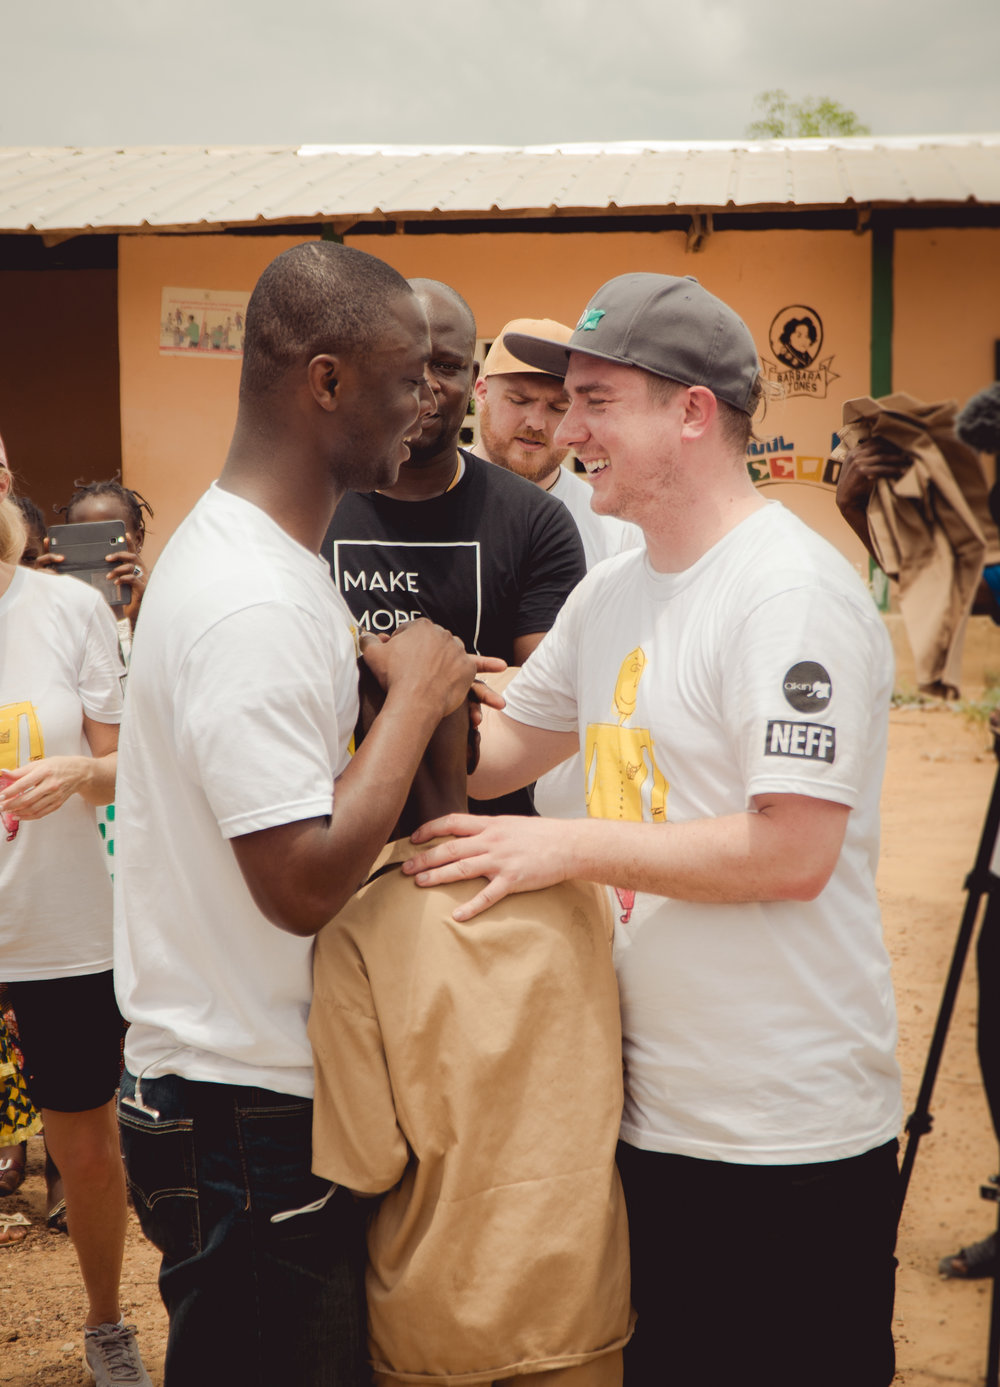 Since the day we met, the dream was always that we could provide the school uniforms for the kids in the schools he builds and now we have made that dream a reality.   - Ben